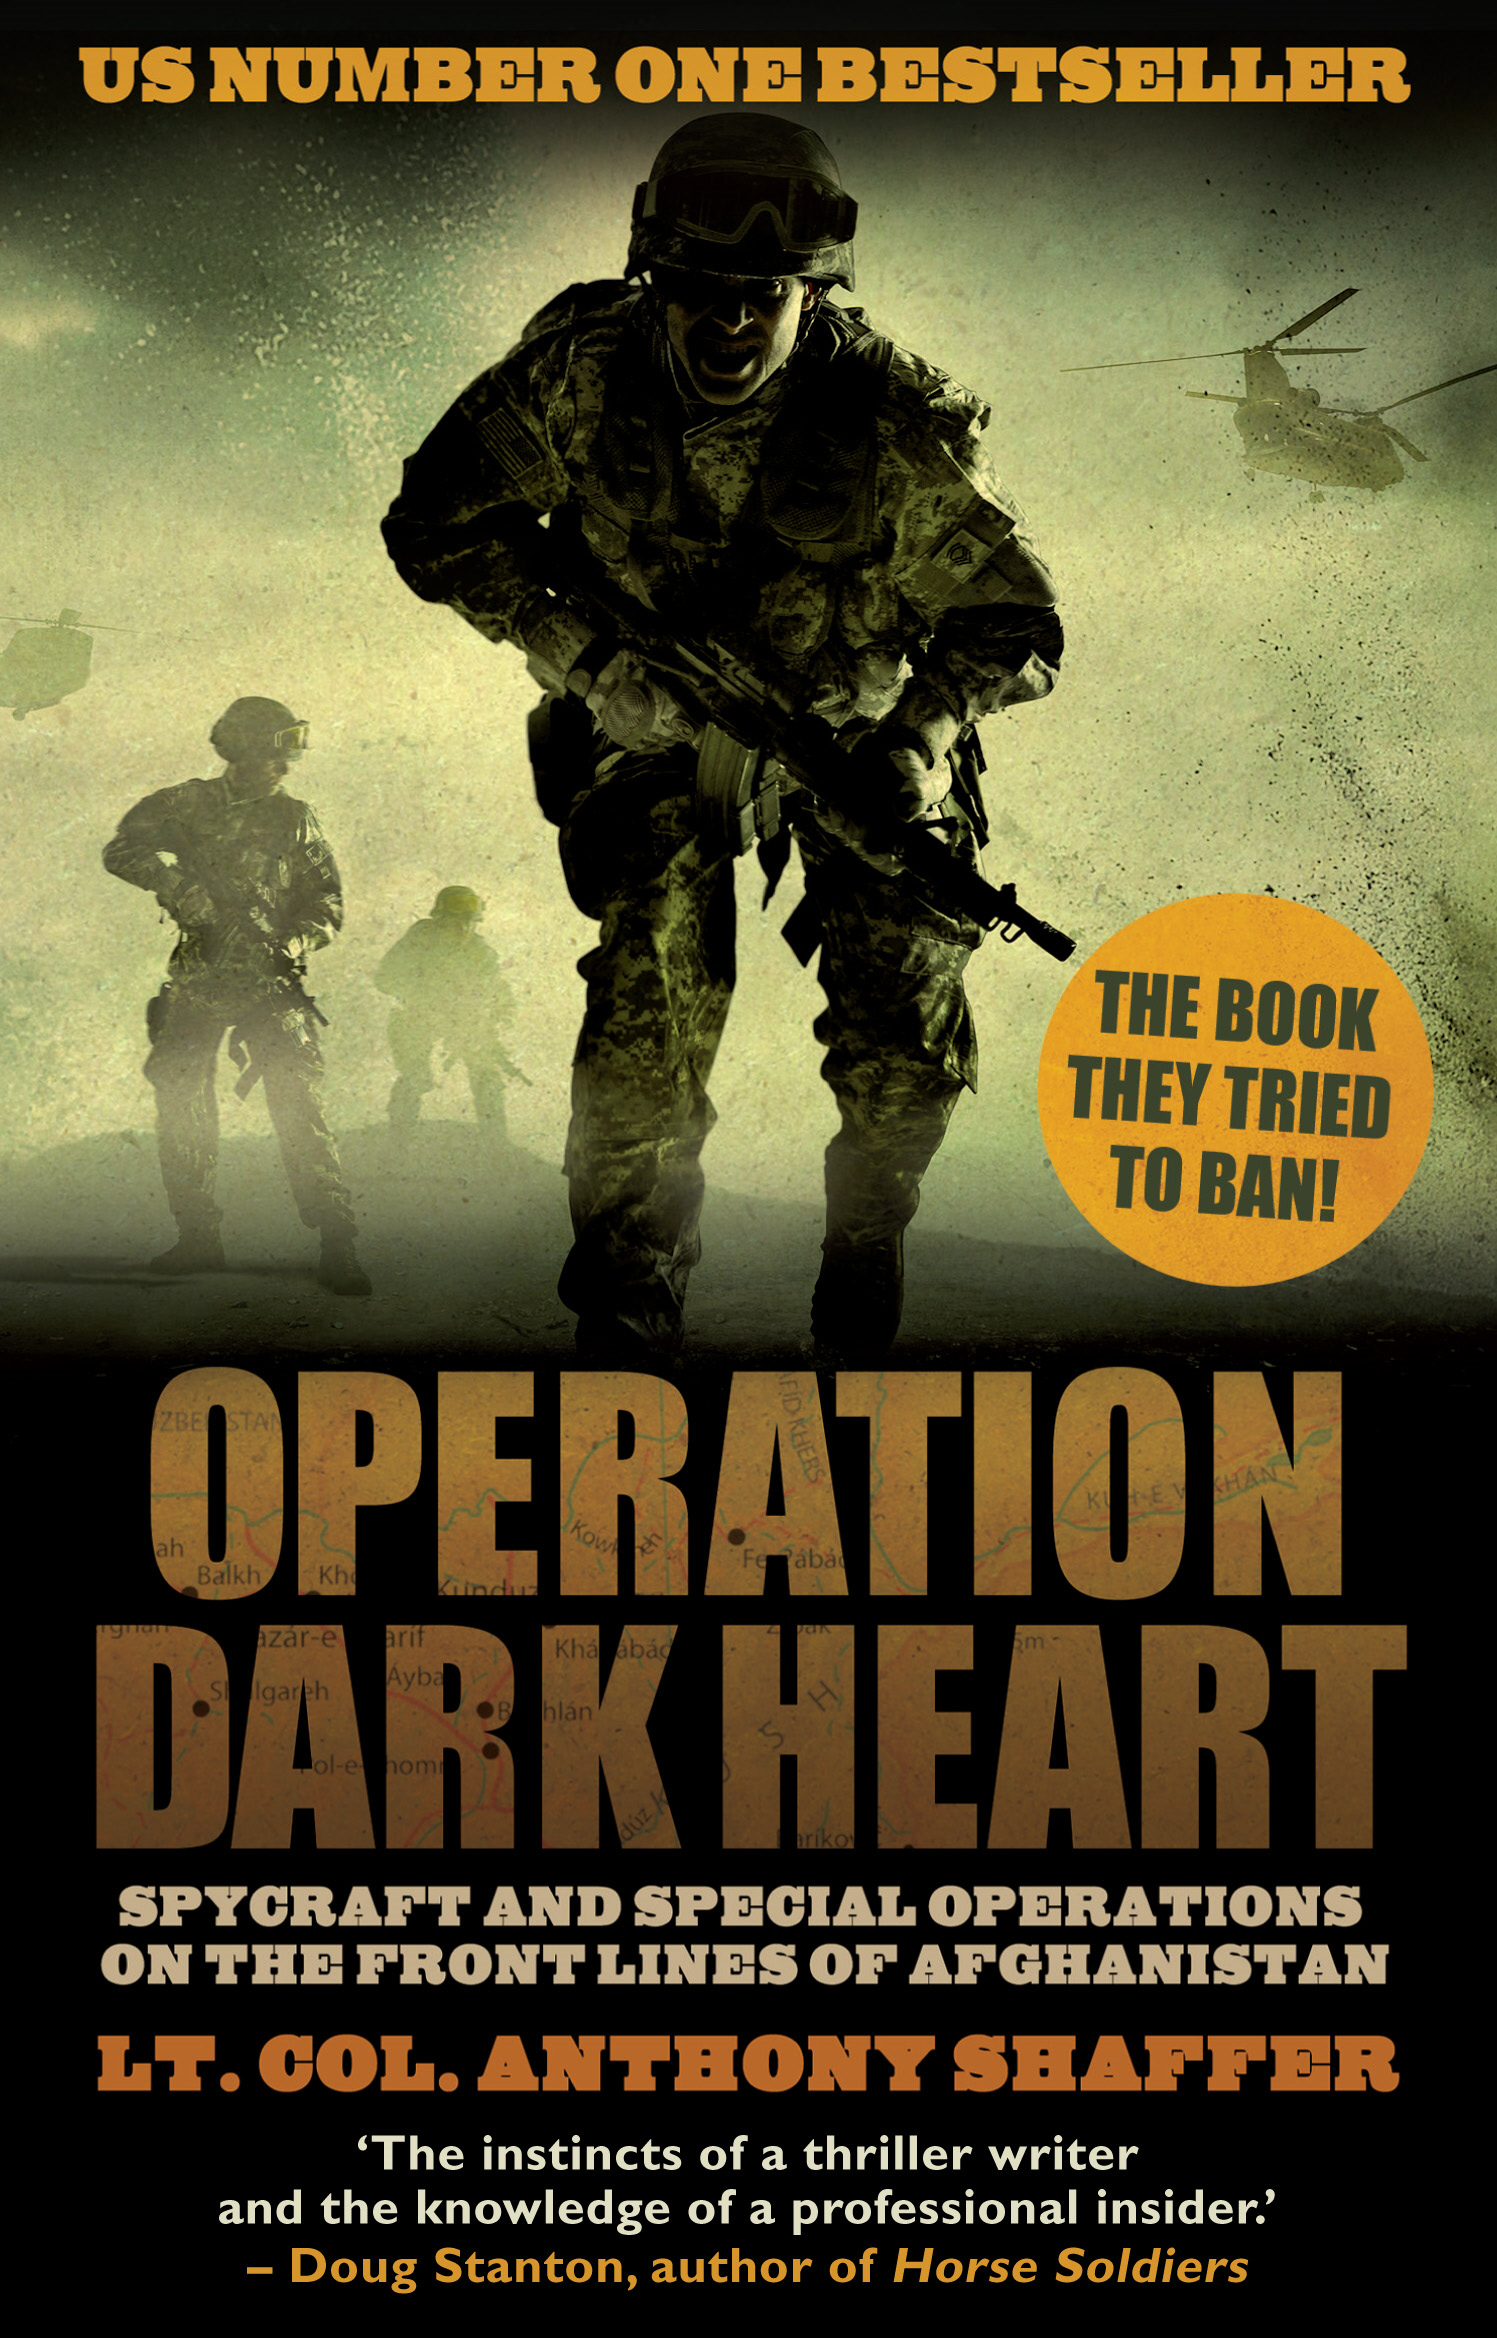 Operation Dark Heart Spycraft and Special Operations on the Front Lines of Afghanistan